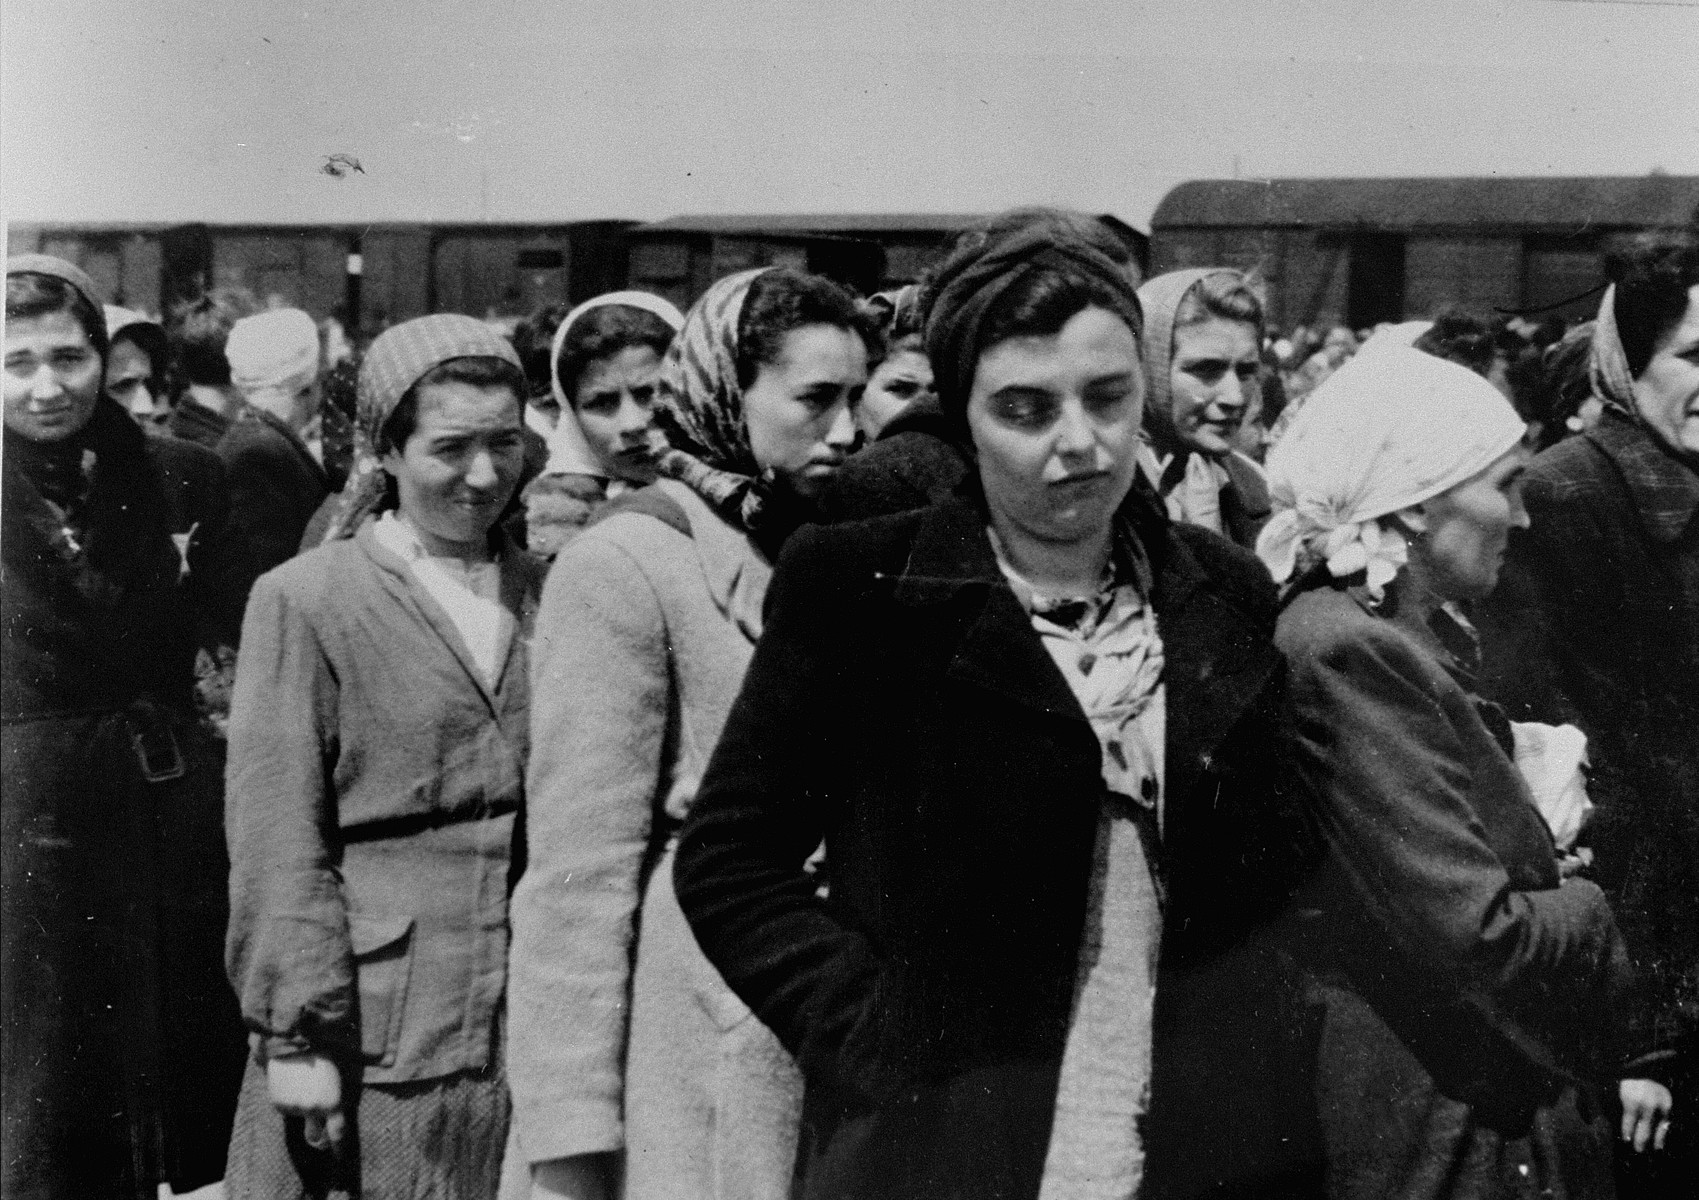 Jewish women from Subcarpathian Rus who have been selected for forced labor at Auschwitz-Birkenau, wait to be taken to another section of the camp.  In the front row is Cilly Stahl, the daughter of Rabbi Elazar Stahl. Behind her, on the right is Sharry Ganz. First from left, in the back is Sury Aron, next to her is Chedvah Zelig, daughter of Elazar Farkash, and third from left, in a white kerchief is Blanka Simsovics. All the women are from the town of Tesco.